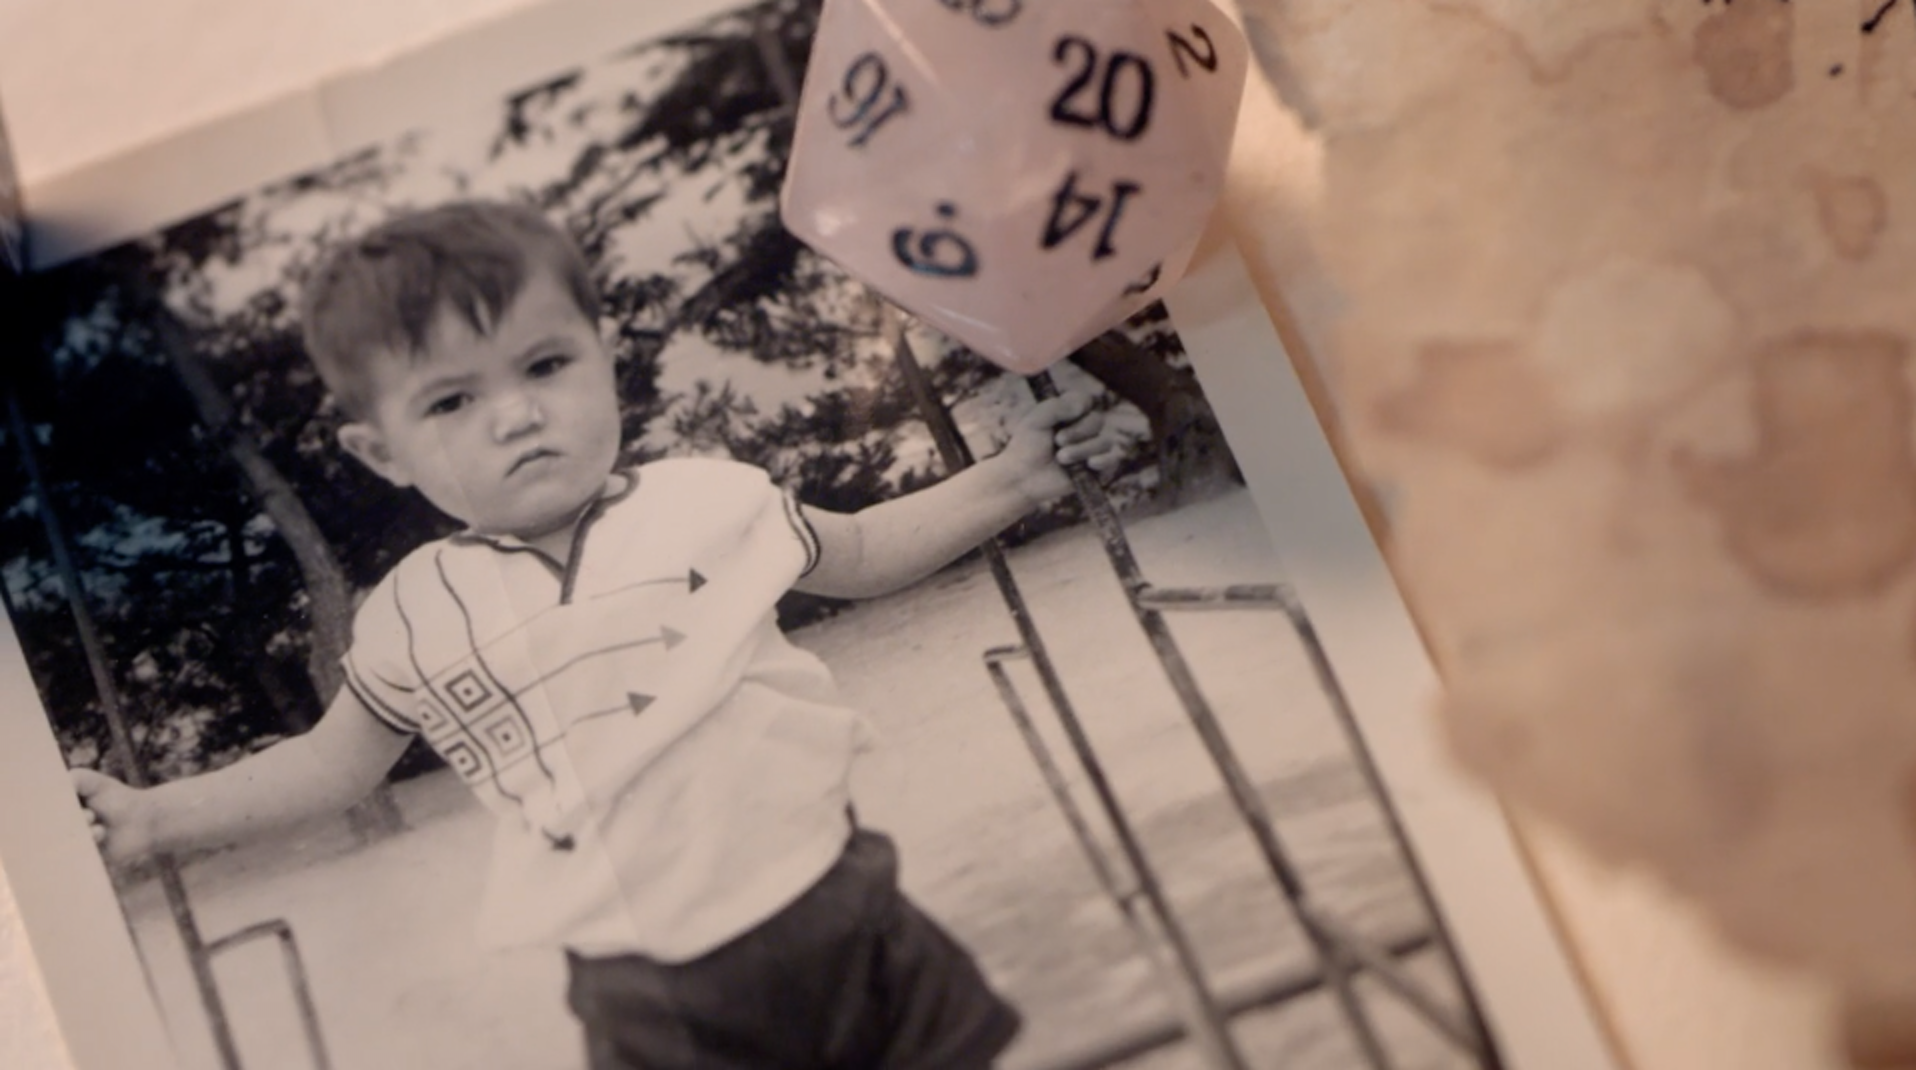 A shot from the film depicting Stefan Pokorny as a child.